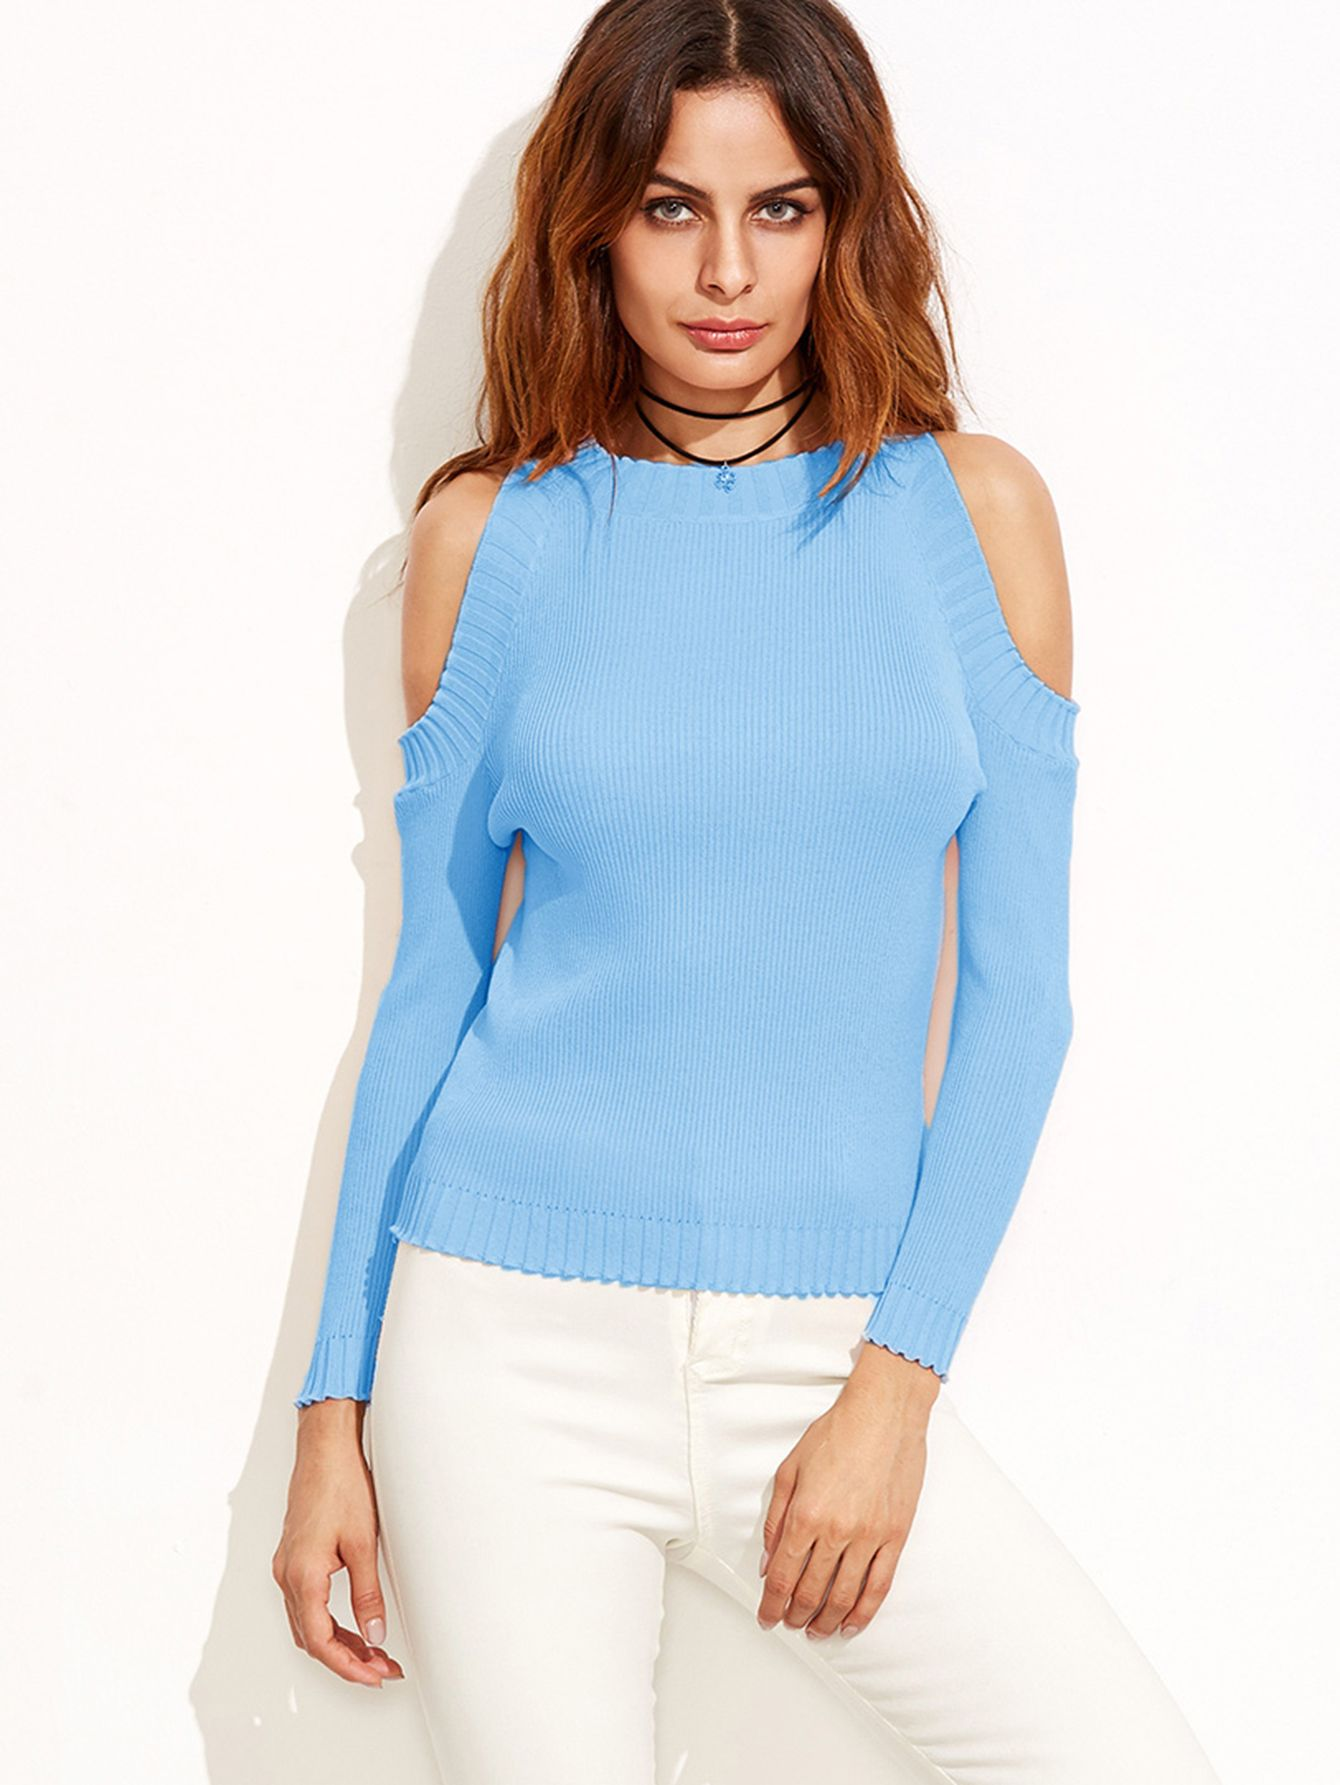 Baby blue shoulder cut out sweater, for summer evenings or autumn. Brings out women's features.  #style #fashion #sweater #best